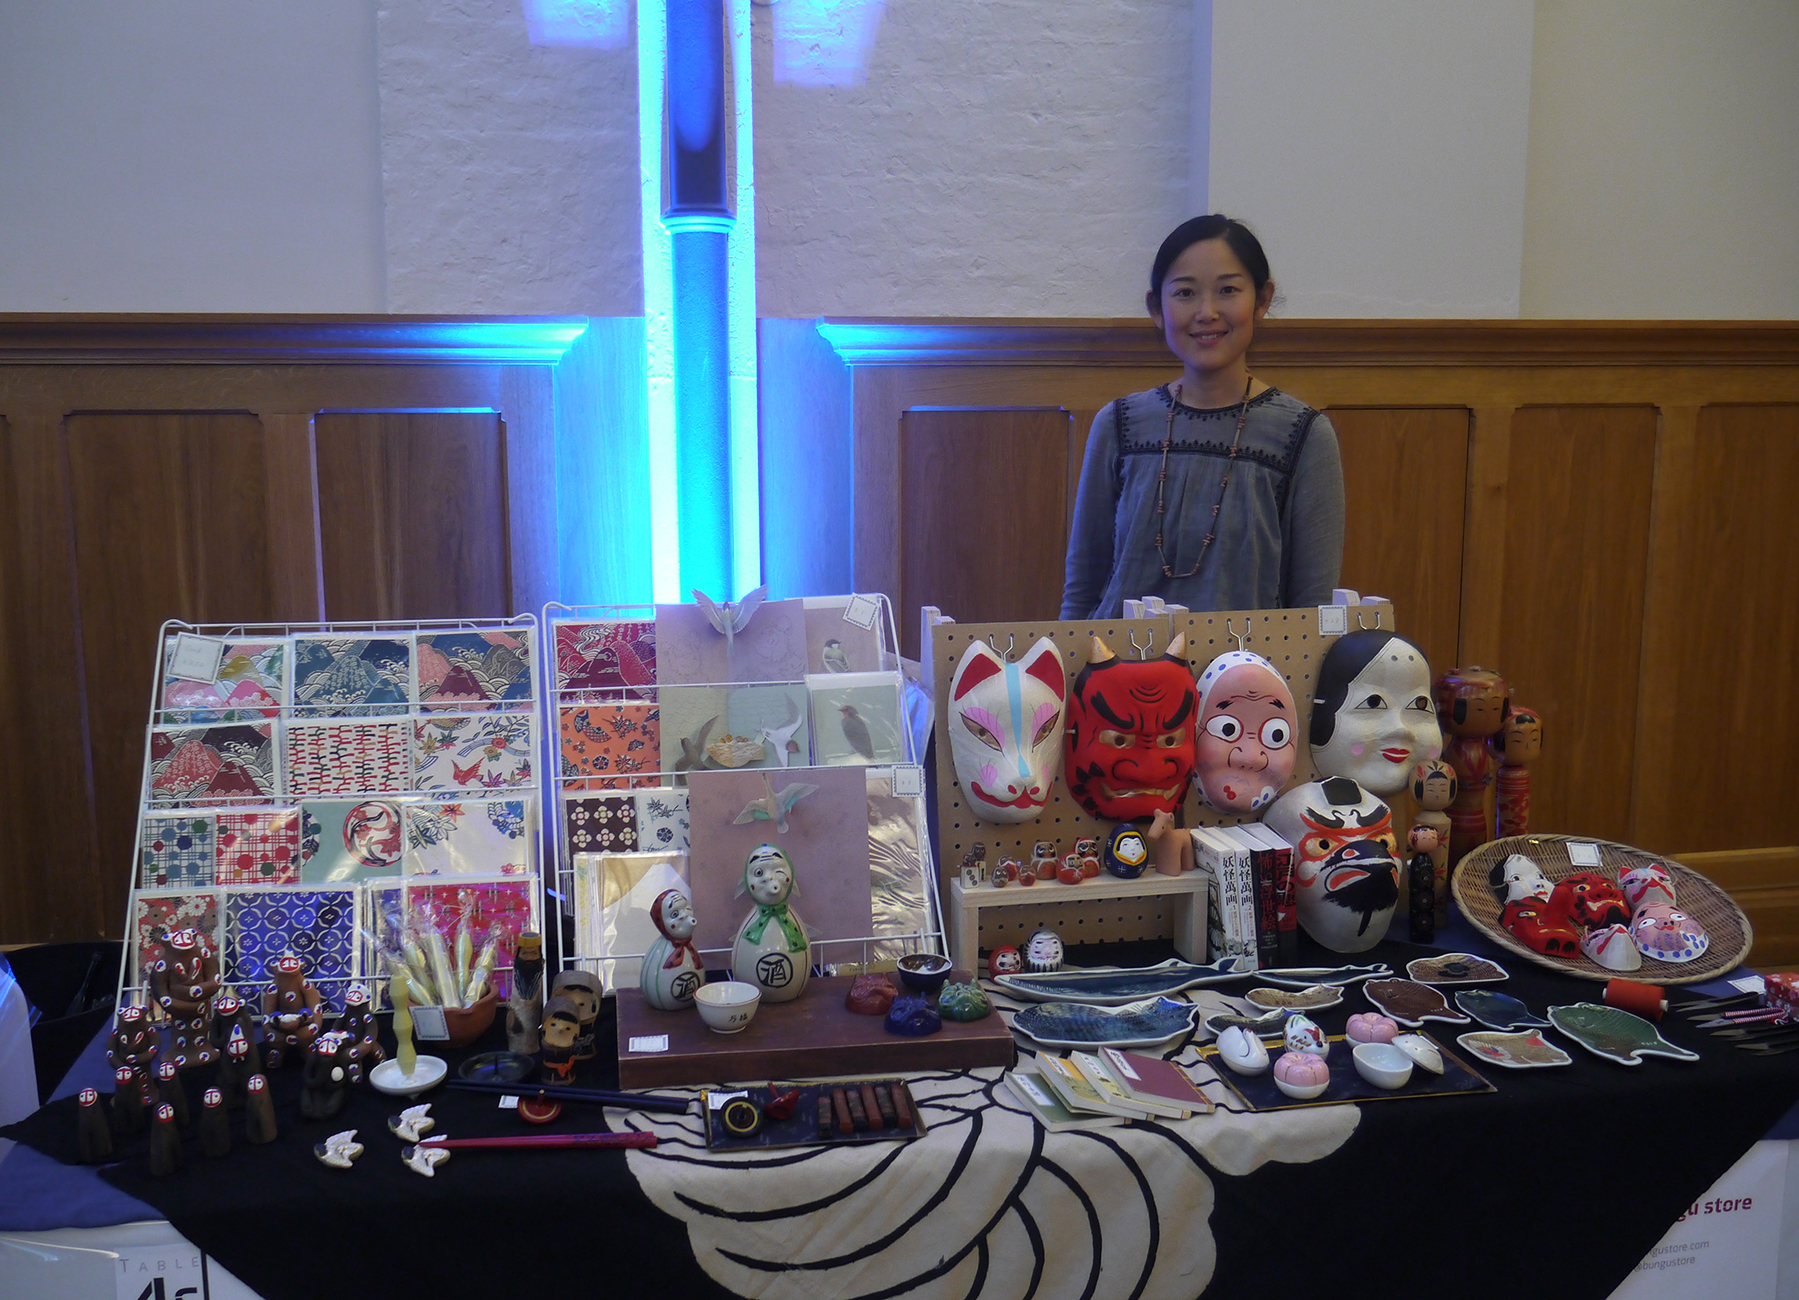 Ouka Ueno, Japanese artist and craftswoman, who brought an amazing selection of creations sourced directly from Japan through her Bungu Store